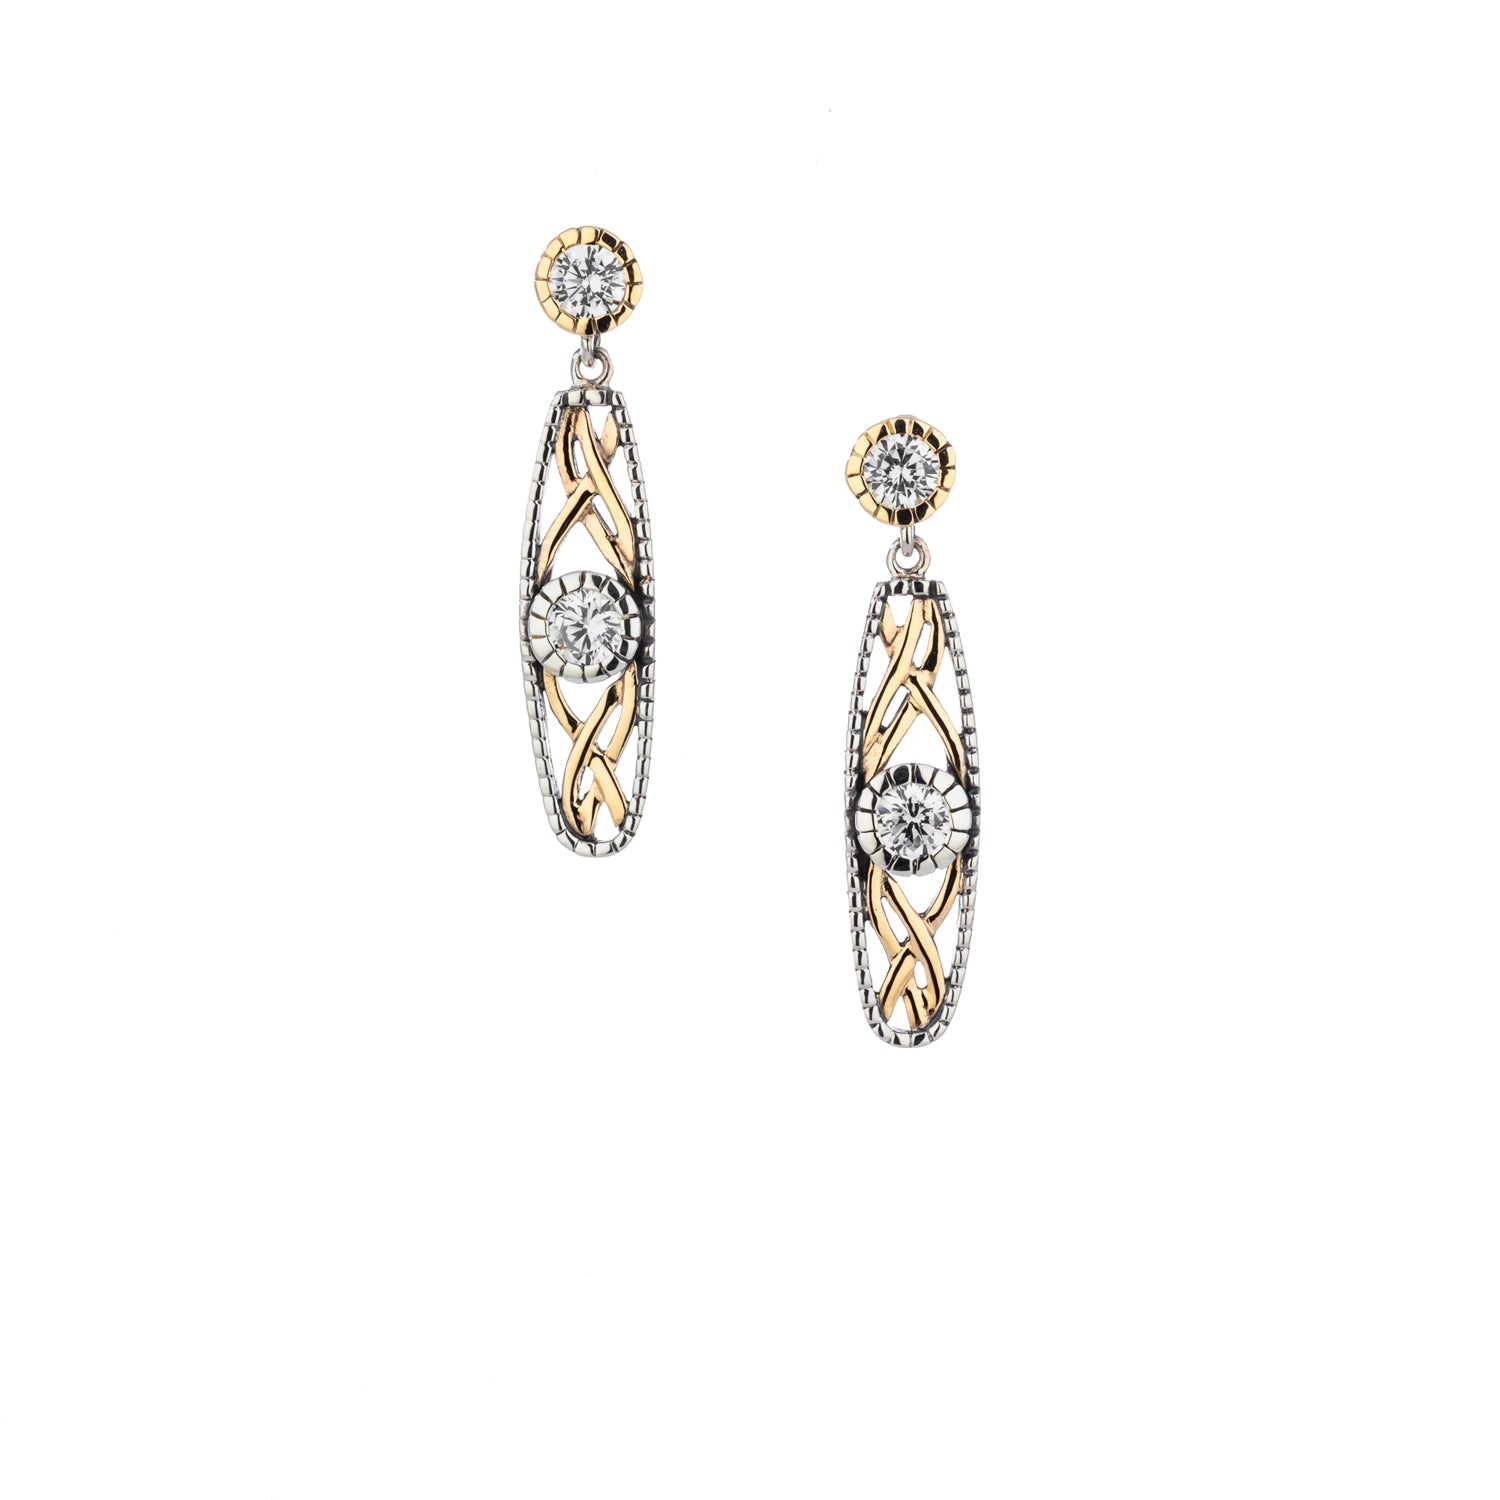 Earrings Oxidized 10k Yellow CZ Brave Heart Post Earrings from welch and company jewelers near syracuse ny